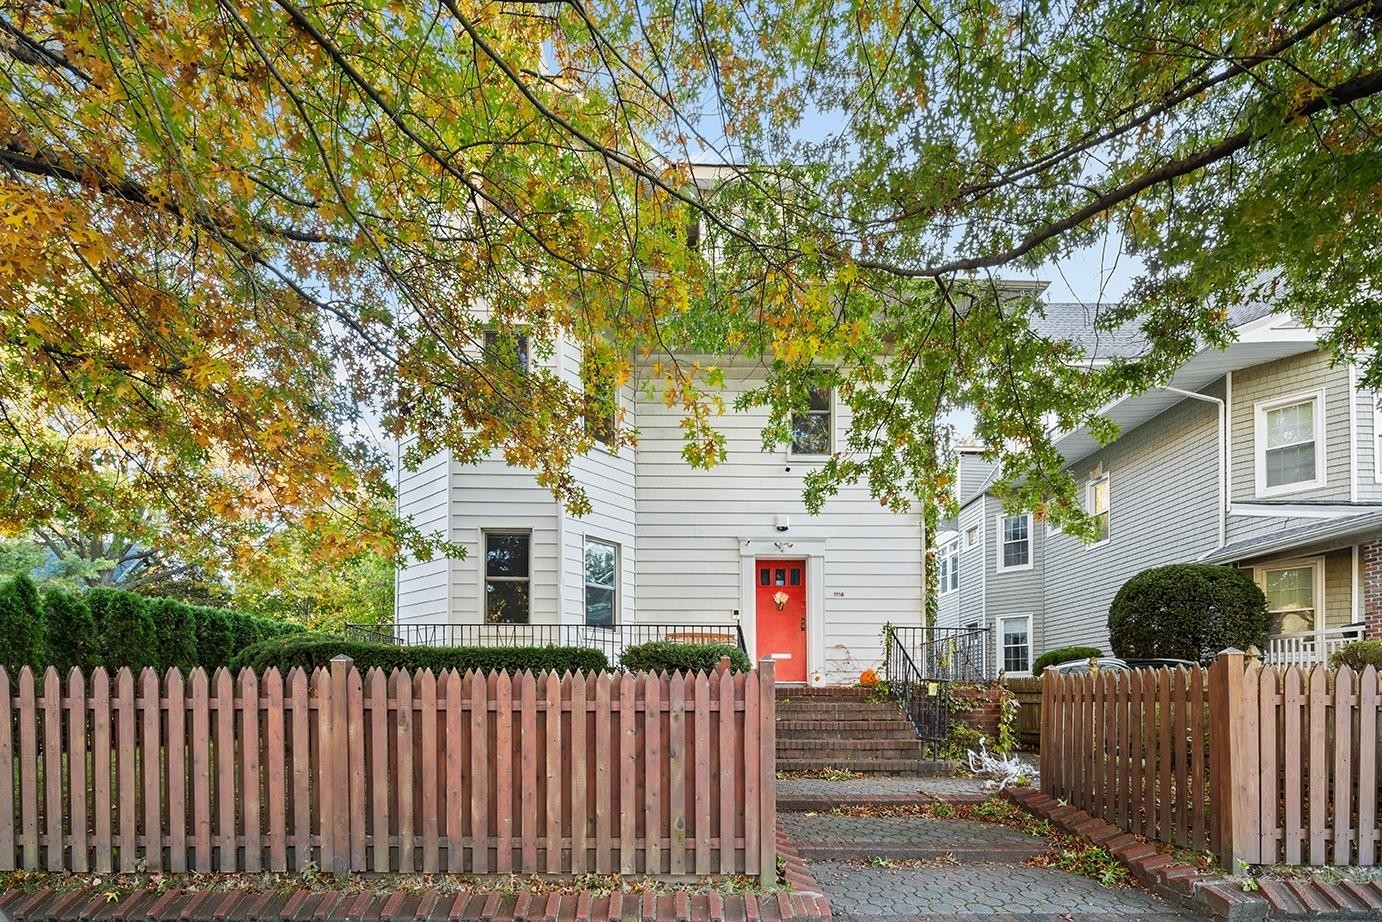 2. Single Family Townhouse for Sale at Ditmas Park, Brooklyn, NY 11218